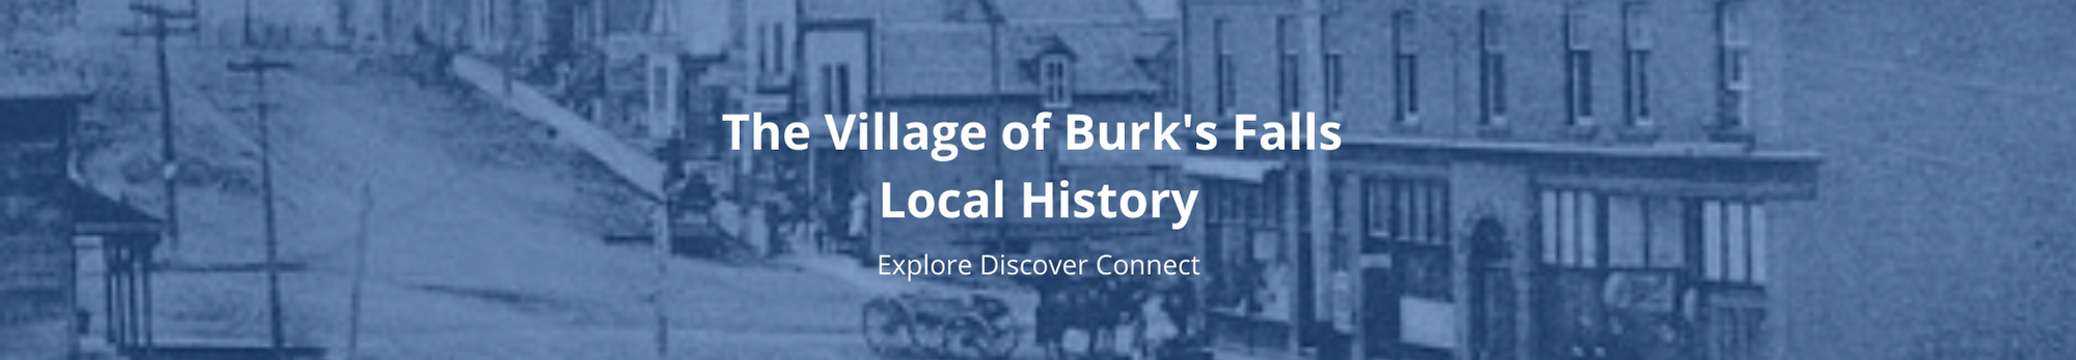 Copy of The Village of Burk's Falls Loca